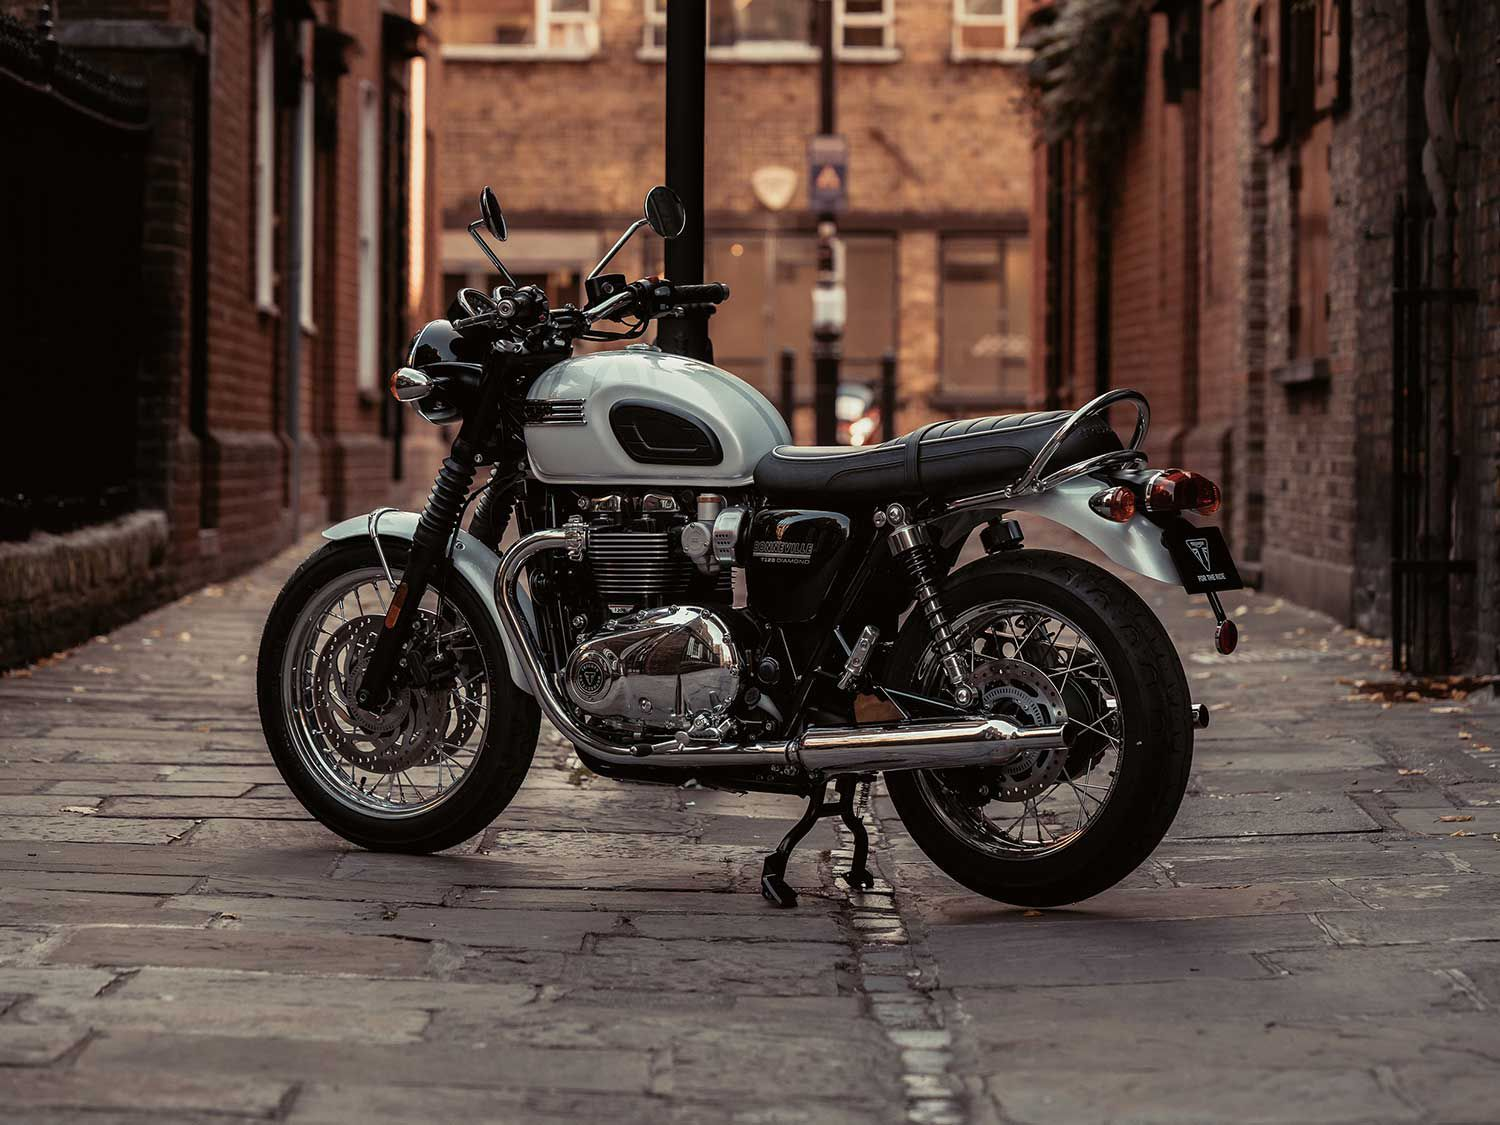 The Bonneville T120 Diamond Edition classes it up with white and silver Union Jack flag graphics and bright chrome finishes.